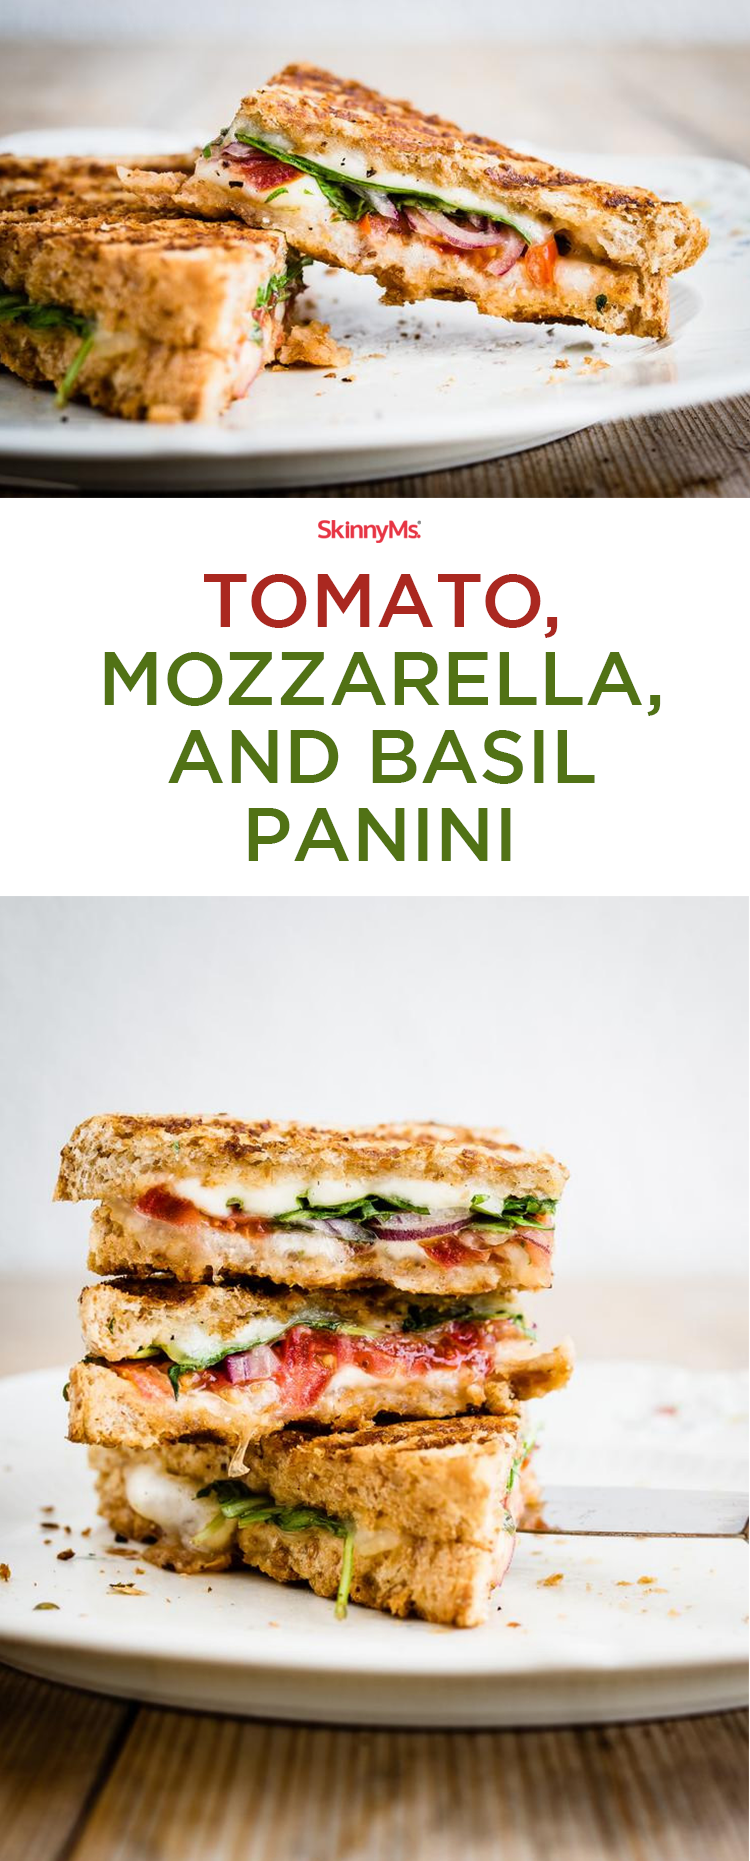 Photo of #Diät Tomaten Mozzarella und Basilikum Panini